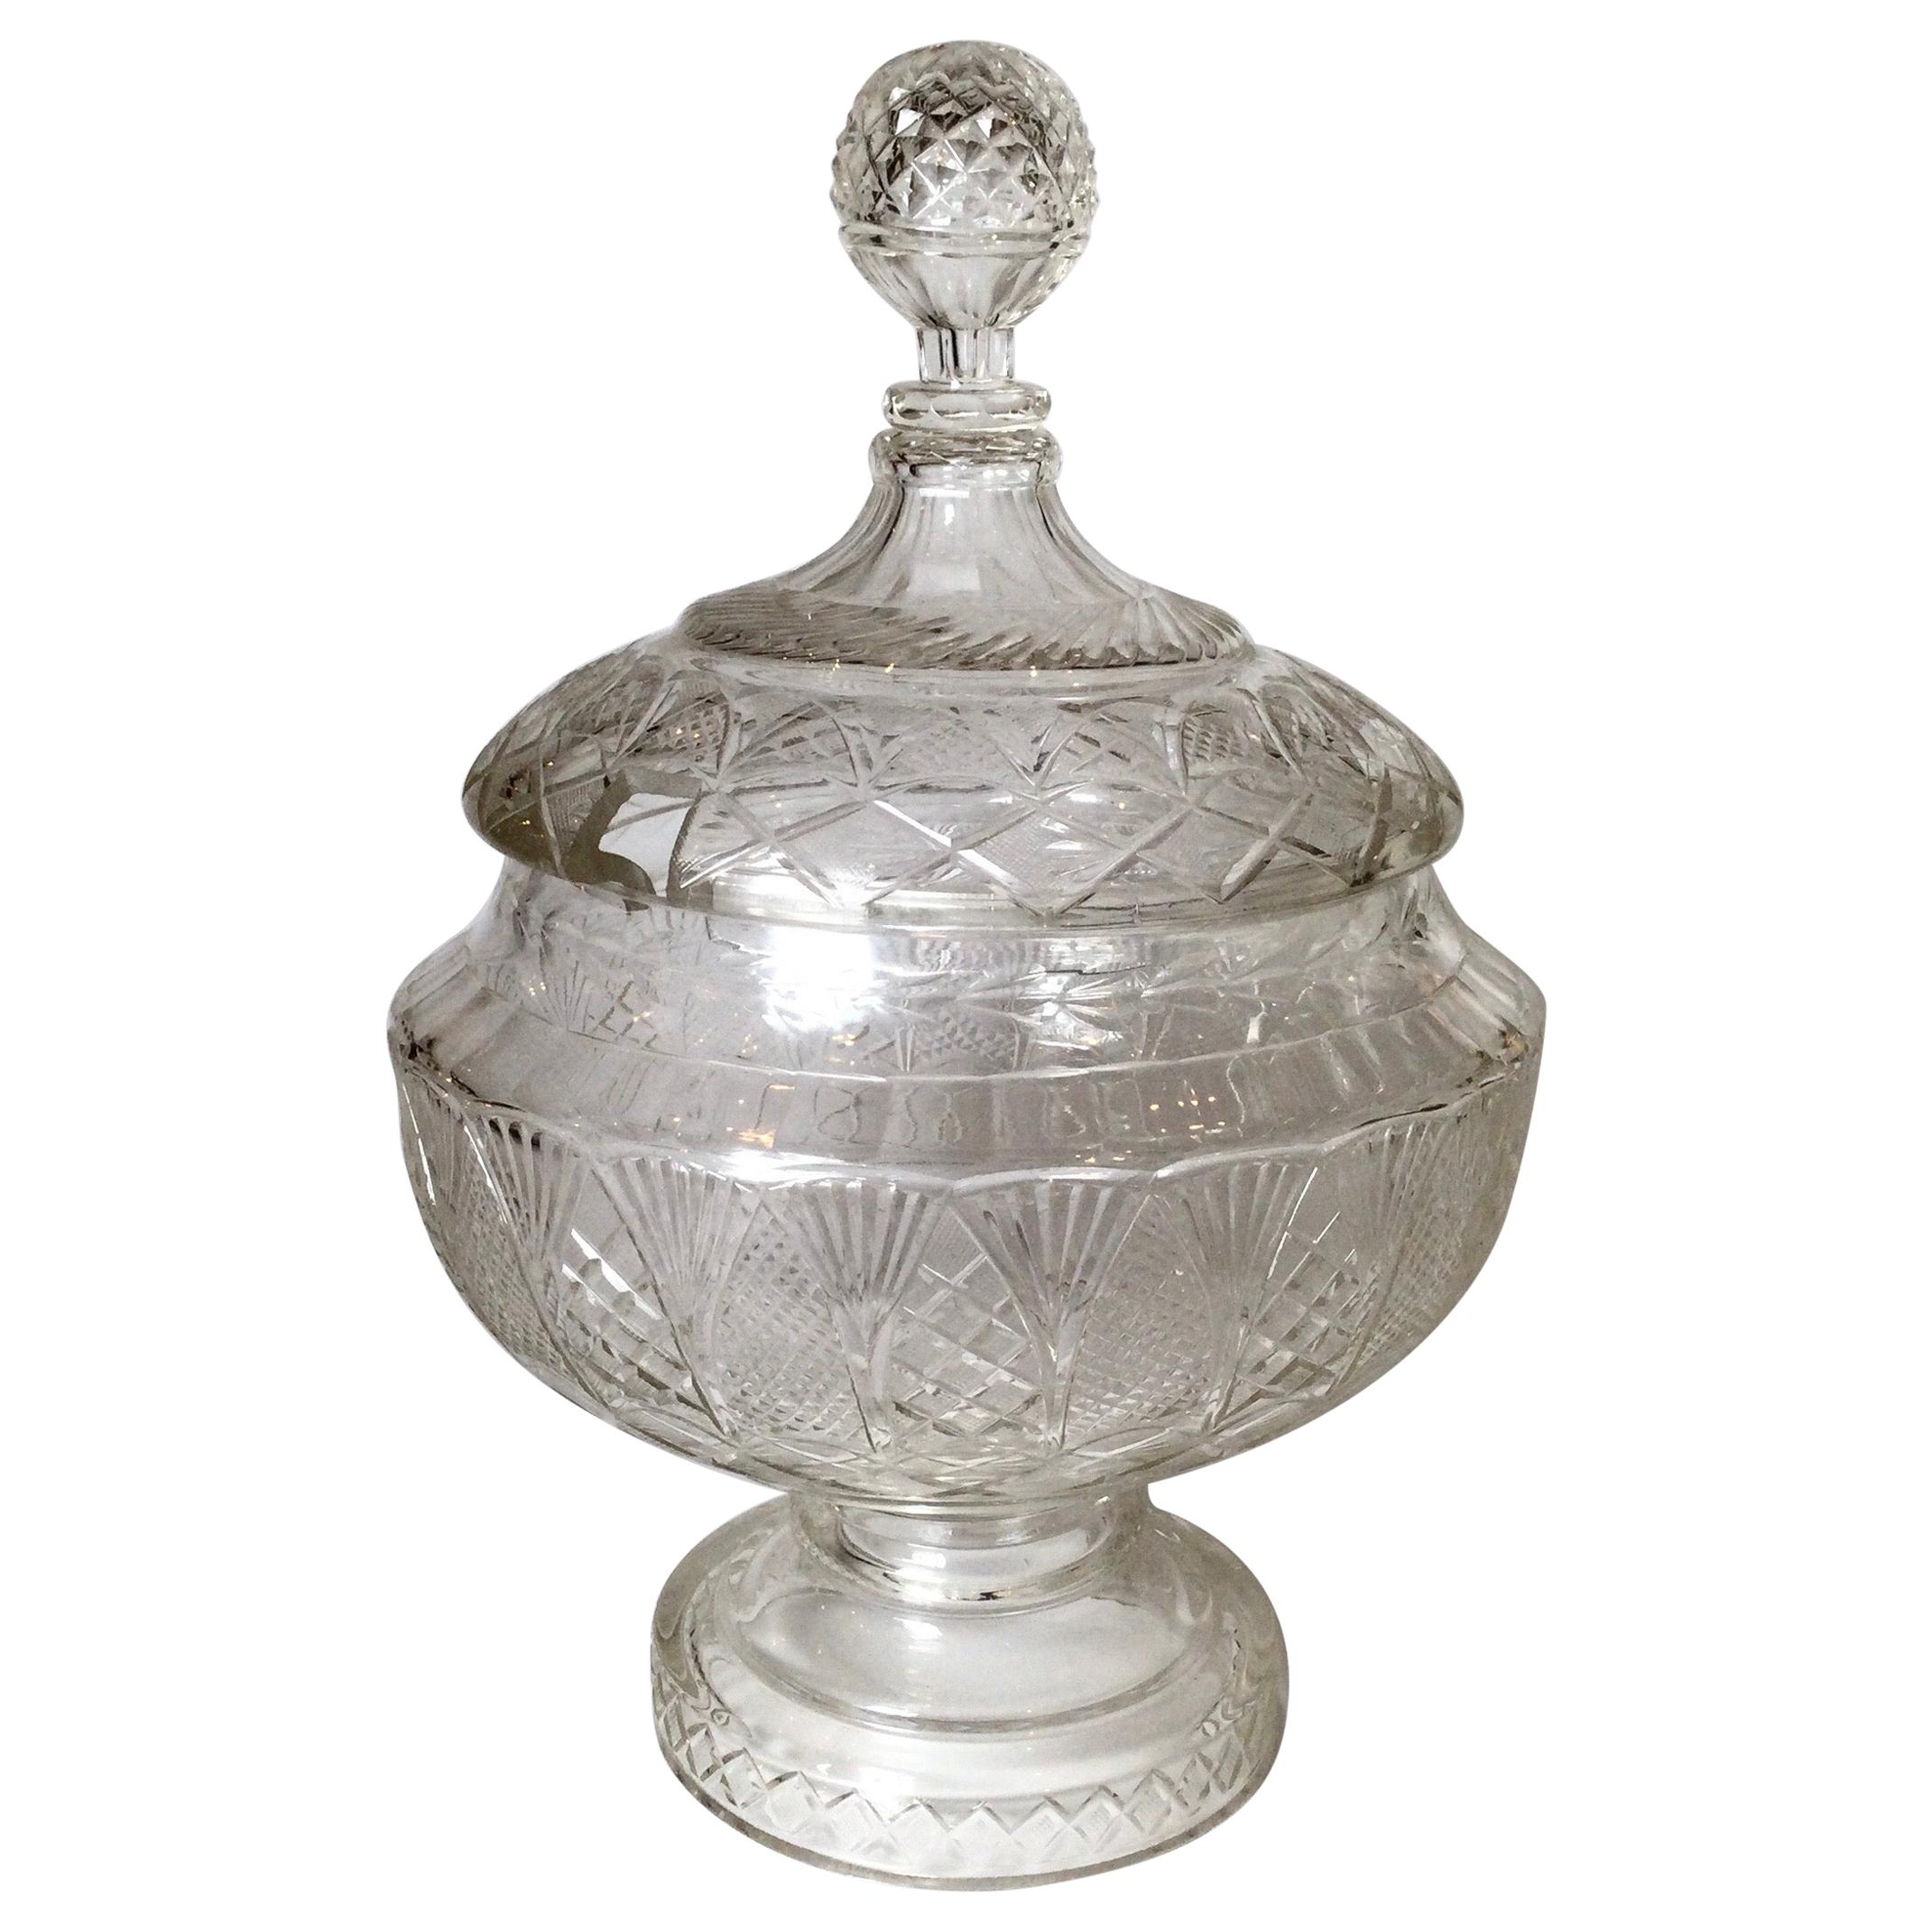 19th Century Austrian Cut Glass Punch Bowl with Lid